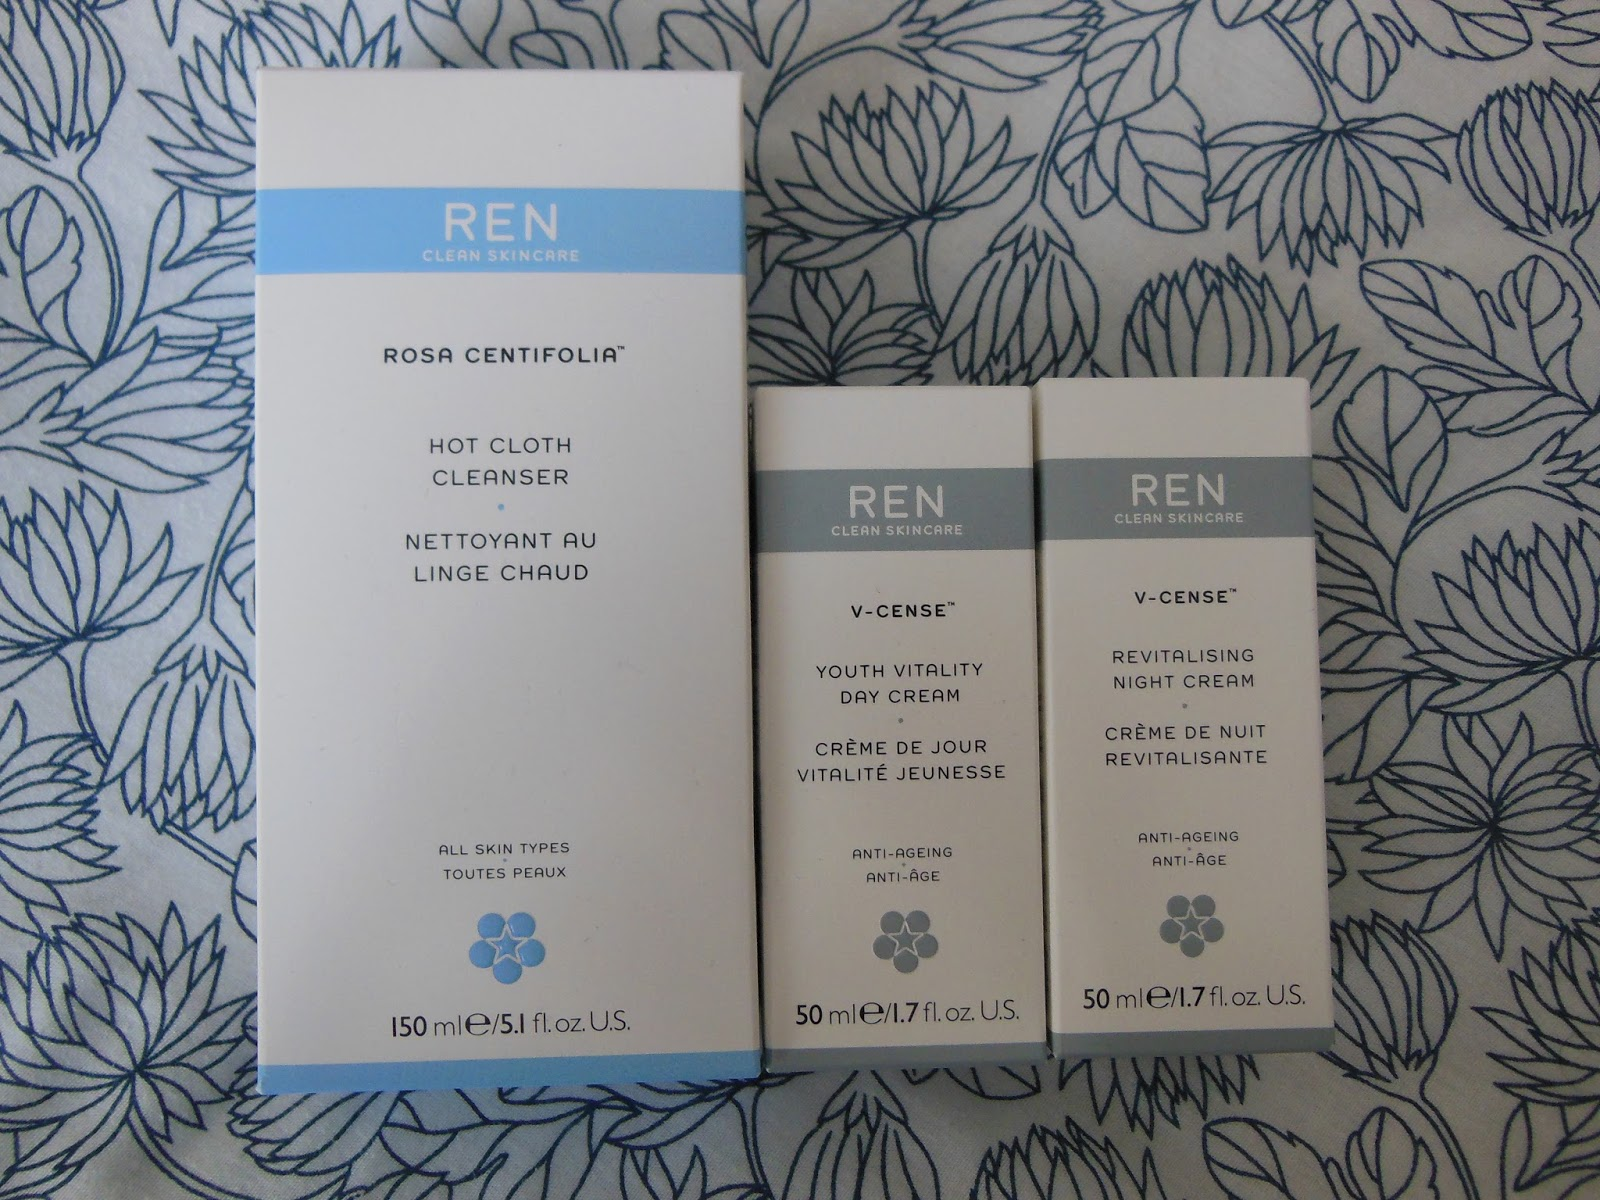 new REN product launches